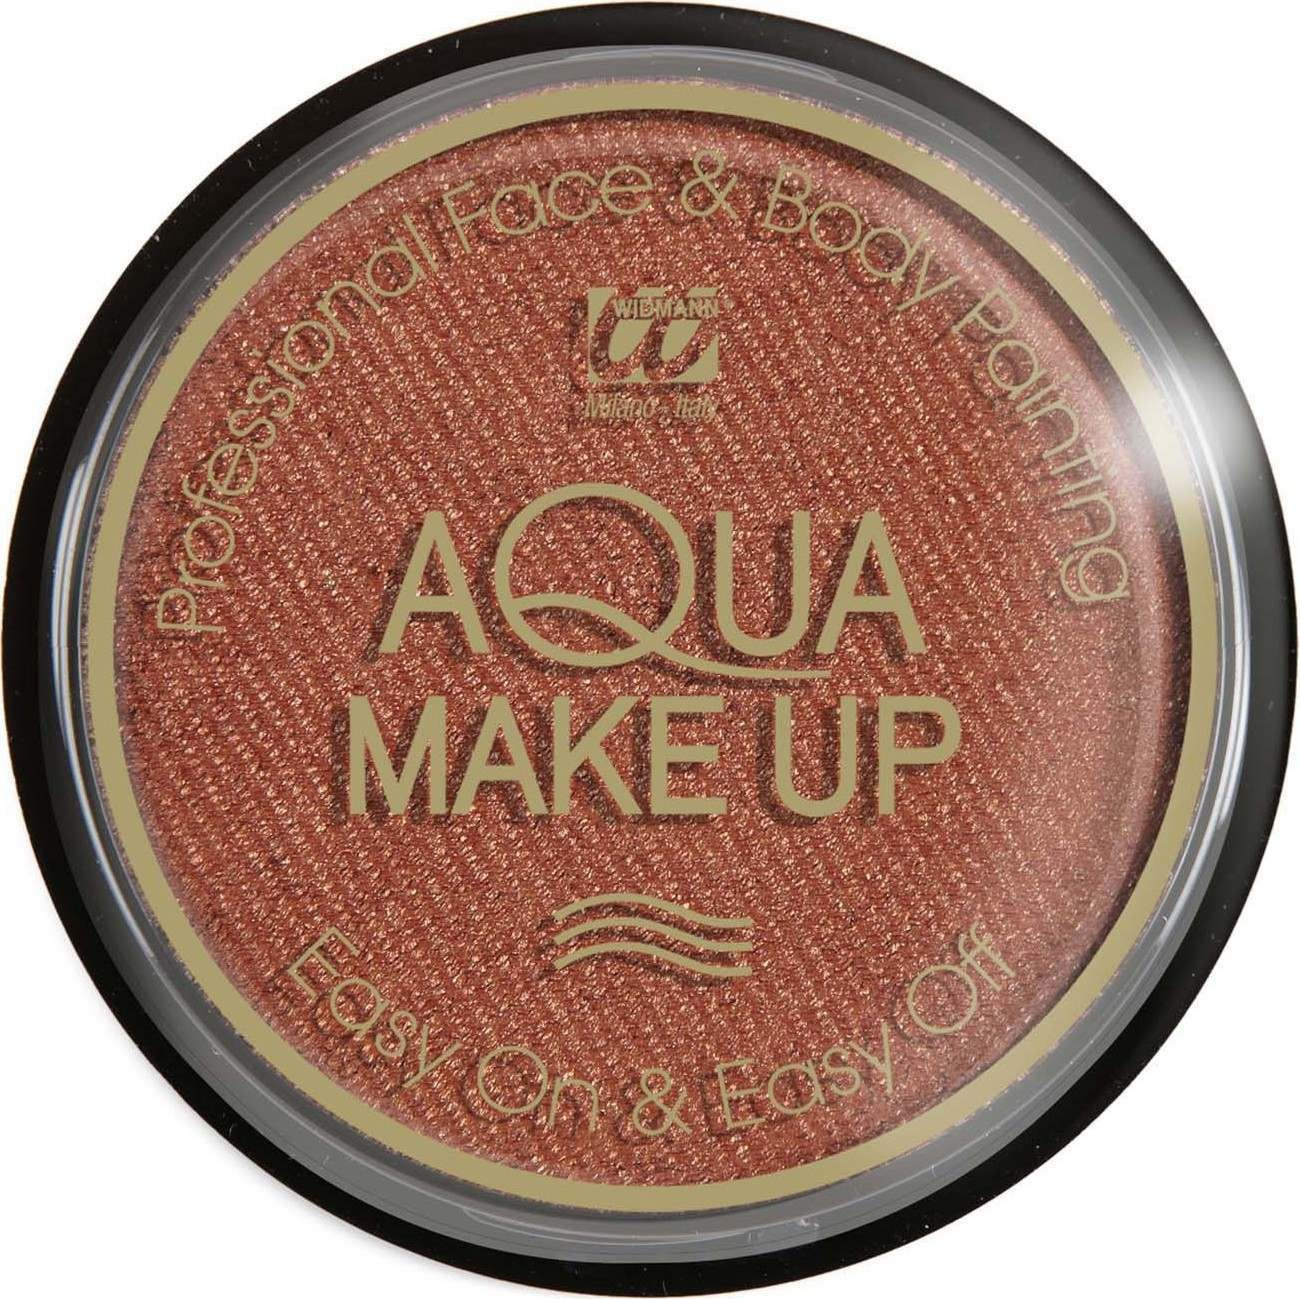 Aqua Makeup 15G - Metallic Bronze Makeup - (Bronze)